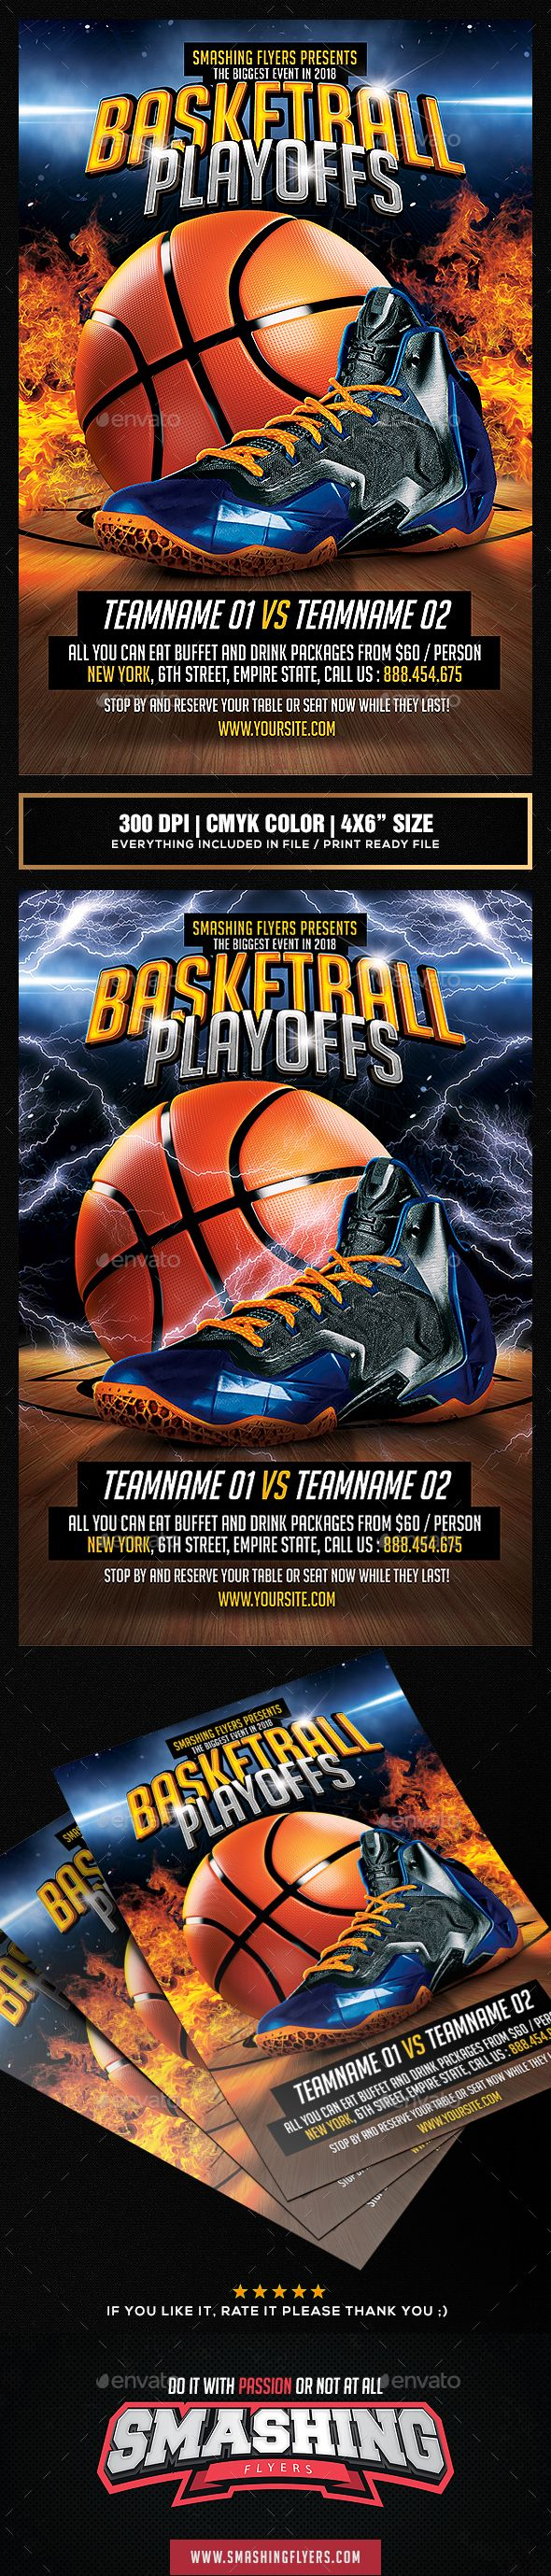 Basketball Playoffs Flyer template by SmashingFlyers Basketball Playoffs Flyer Promote the season's NBA games with this highly customizable Basketball Flyer Template!4x6 size flyer te